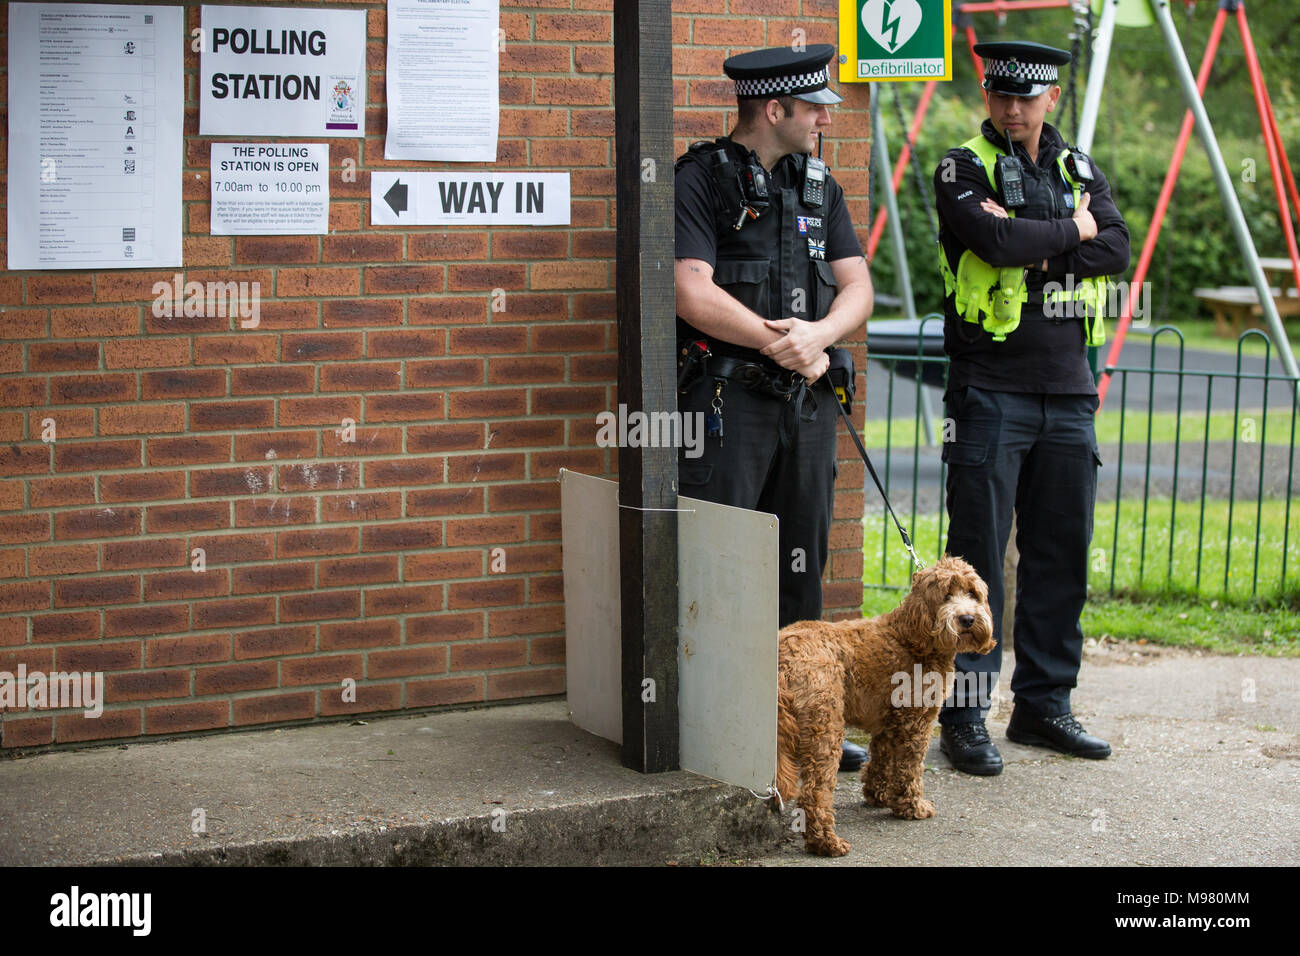 Sonning, UK. 8th June, 2017. Police officers look after a dog for its owner outside Prime Minister Theresa May's local polling station in Sonning. - Stock Image